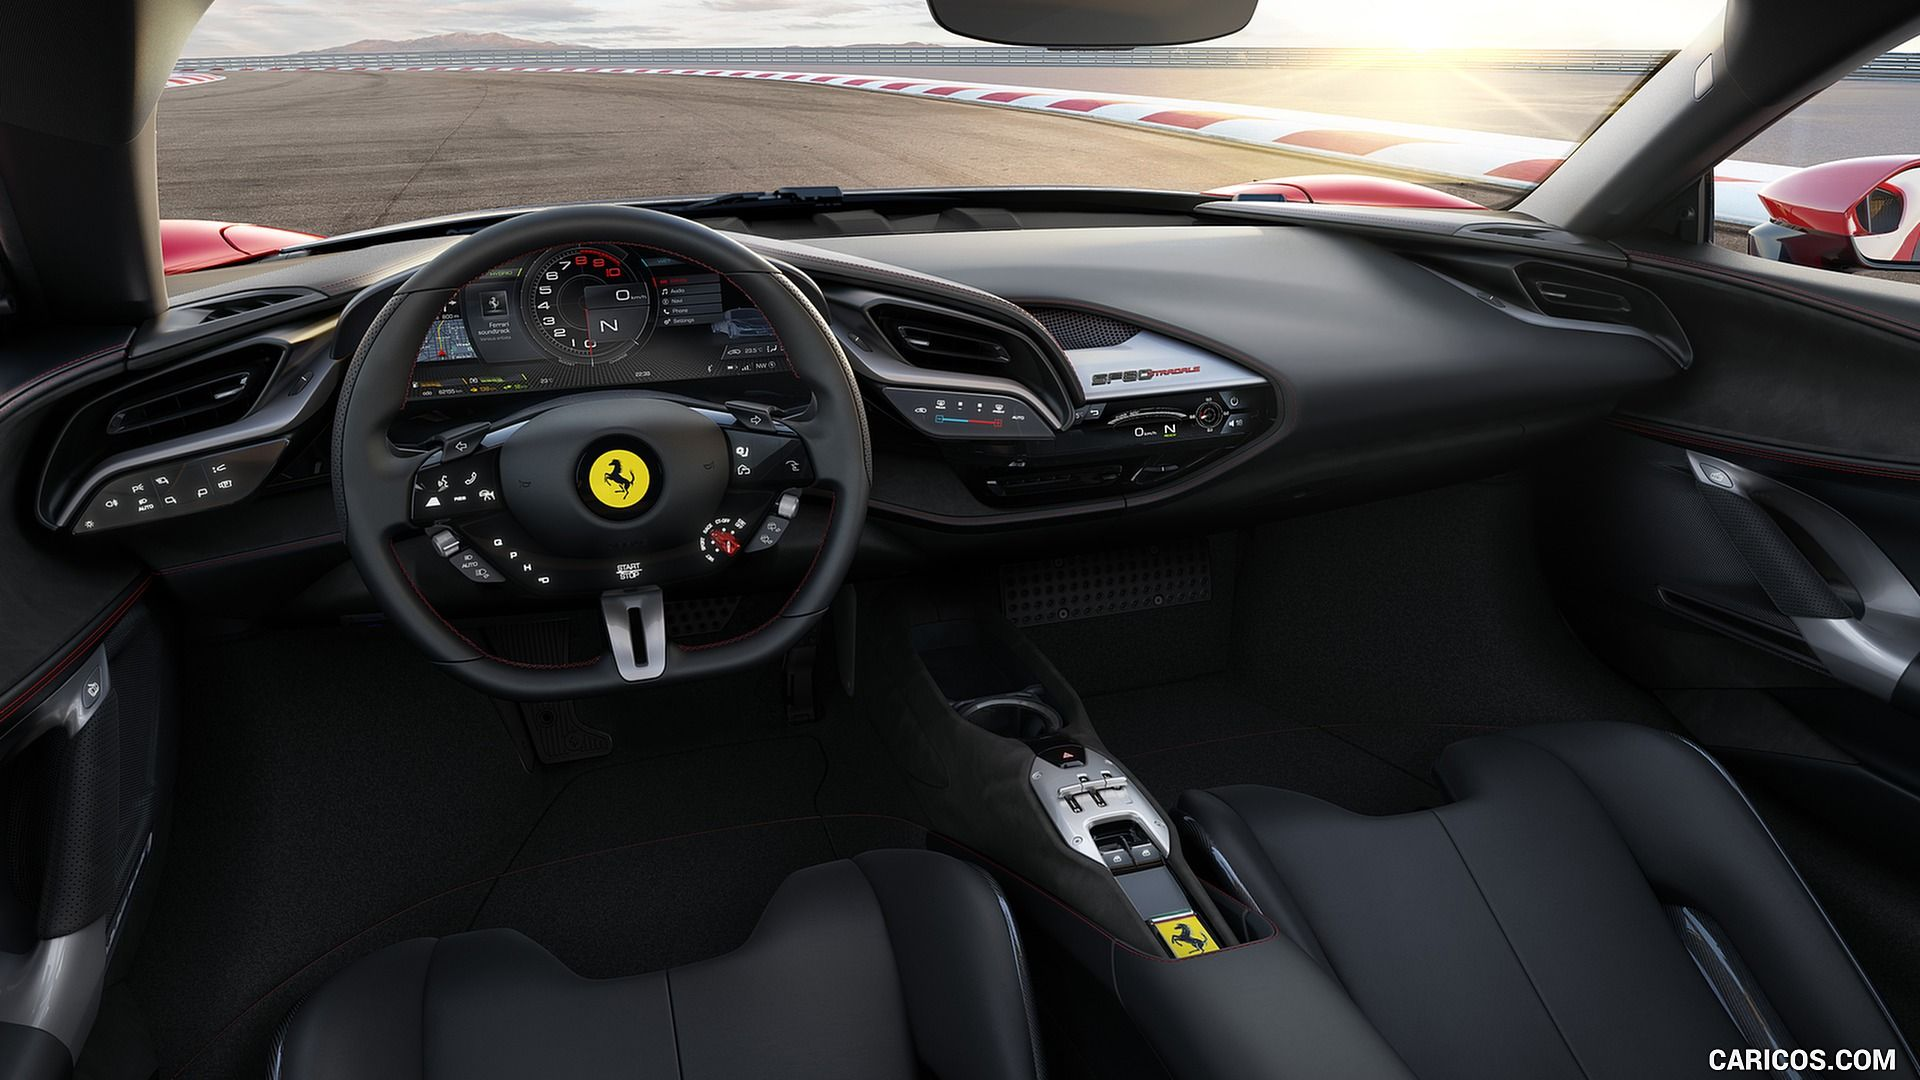 2020 Ferrari Sf90 Stradale Interior Cockpit Hd With Images